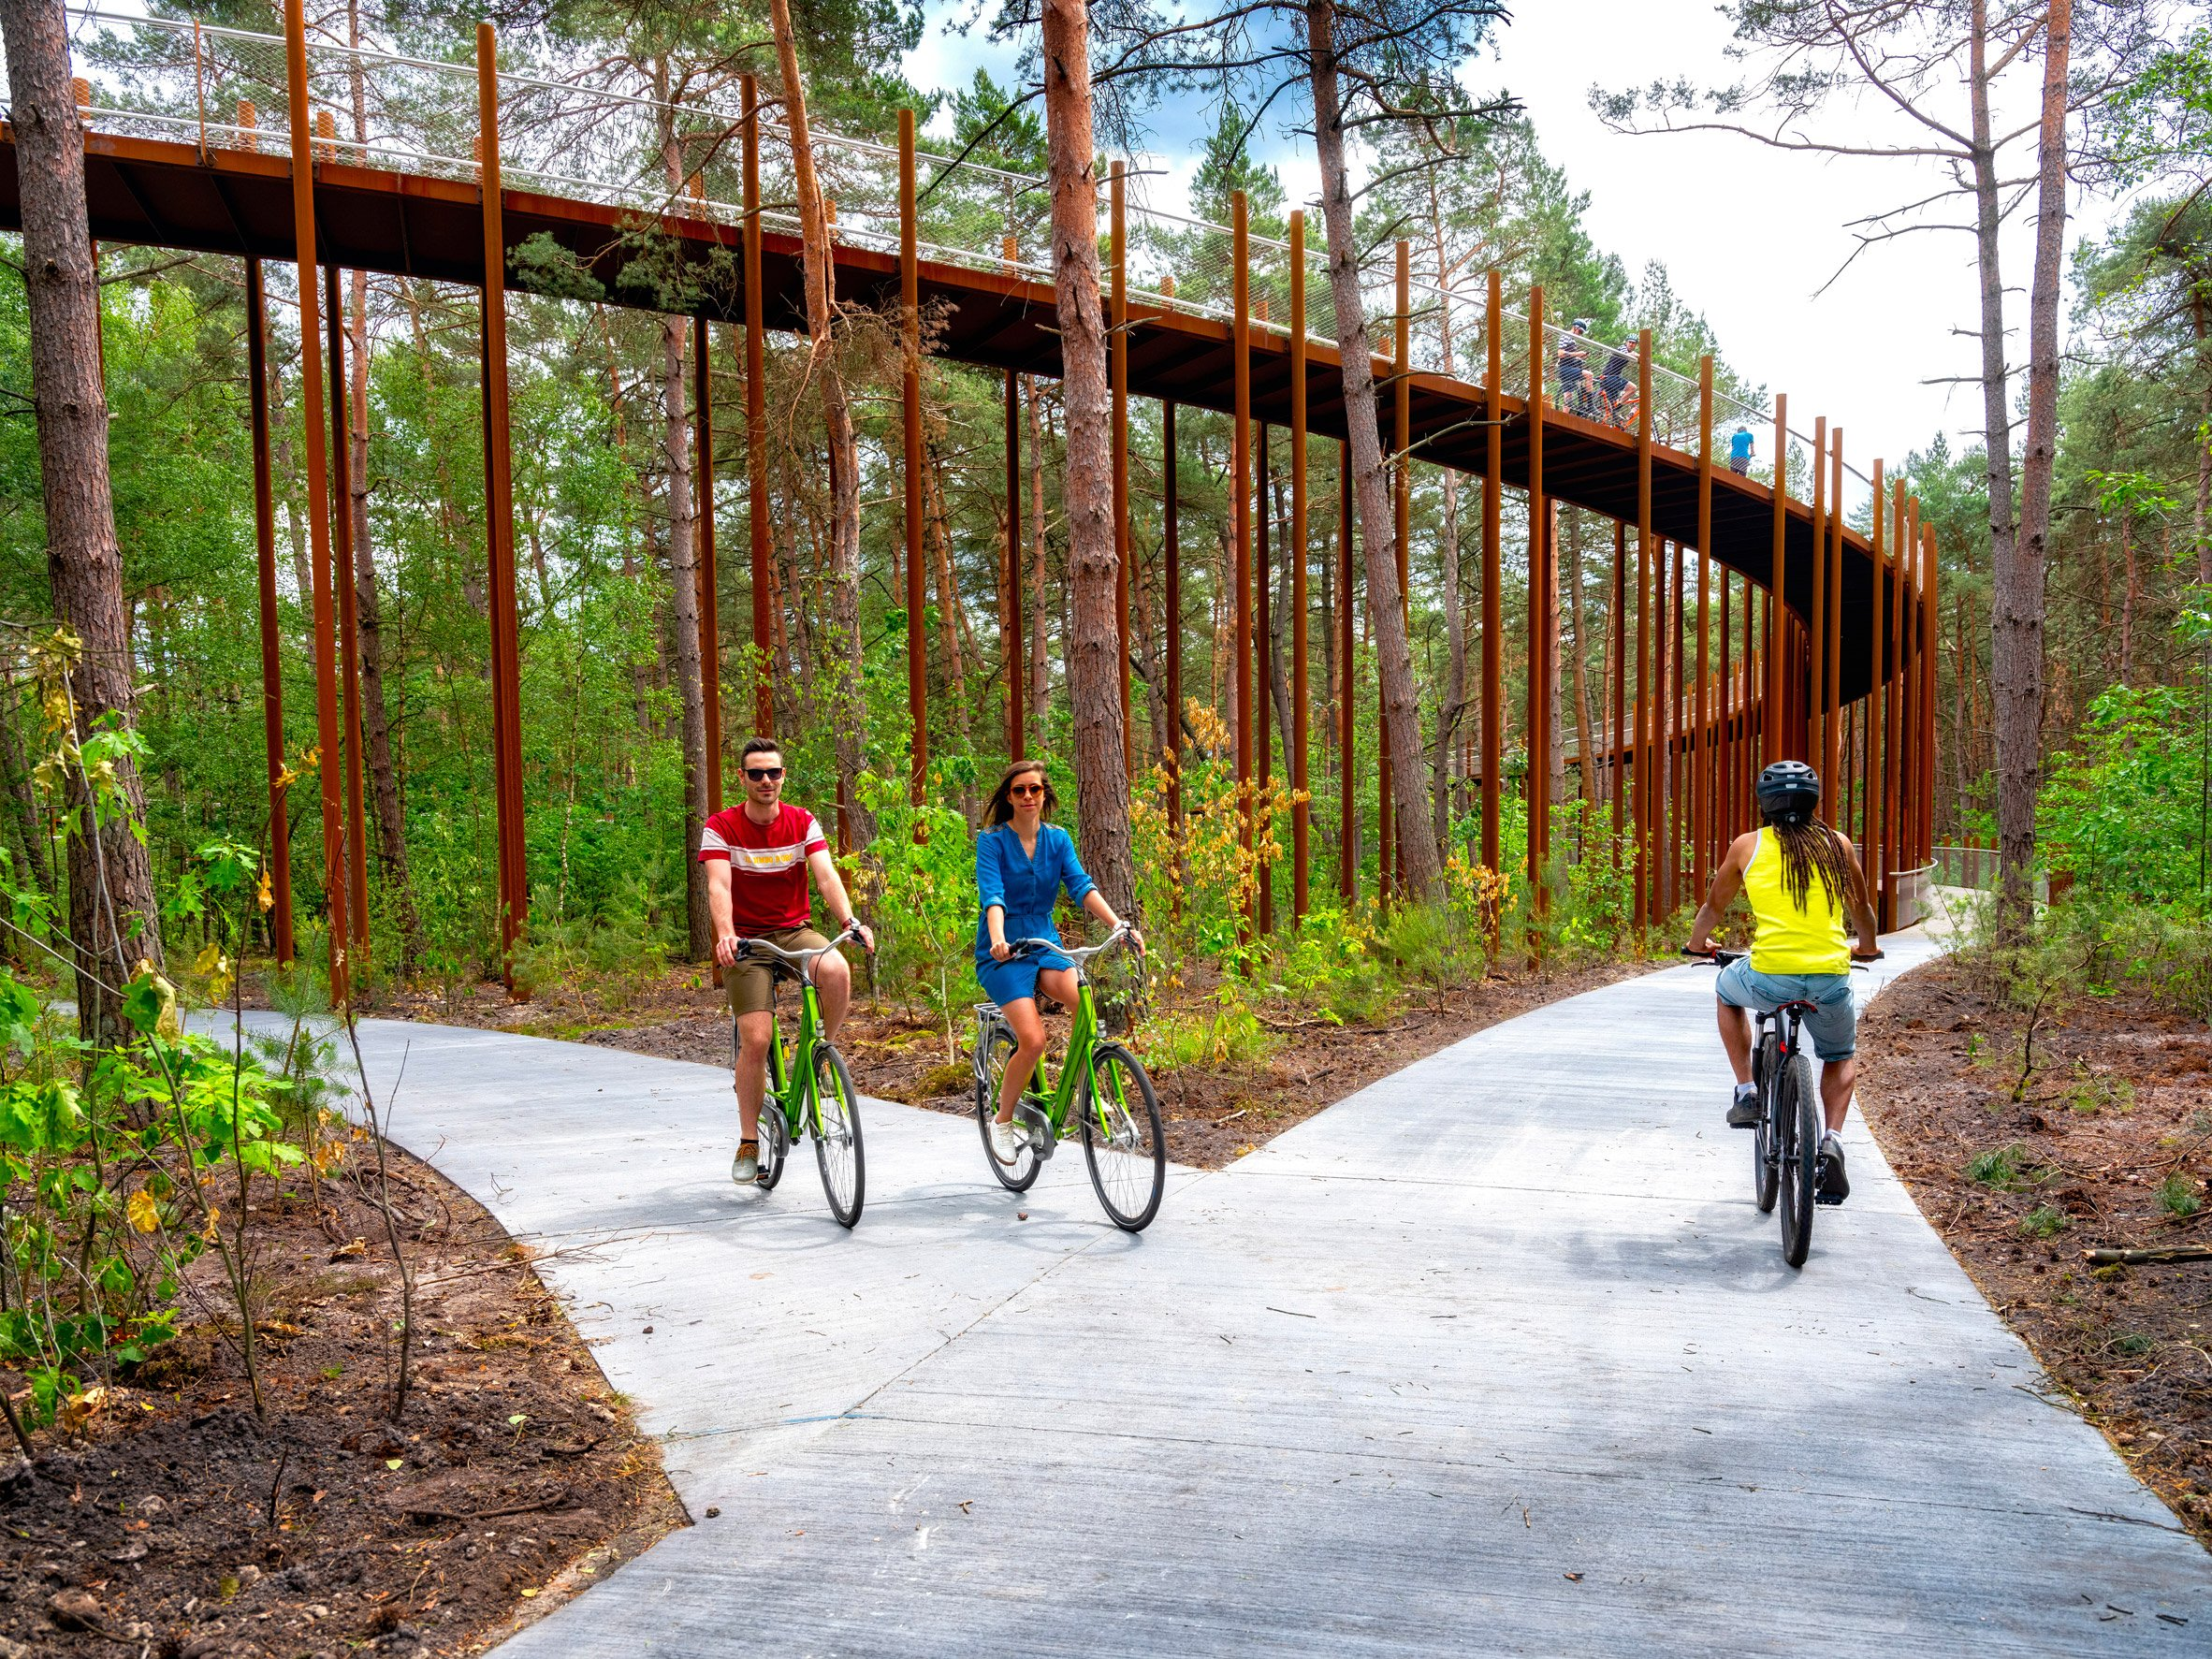 Cycling Through The Trees in Limburg forest